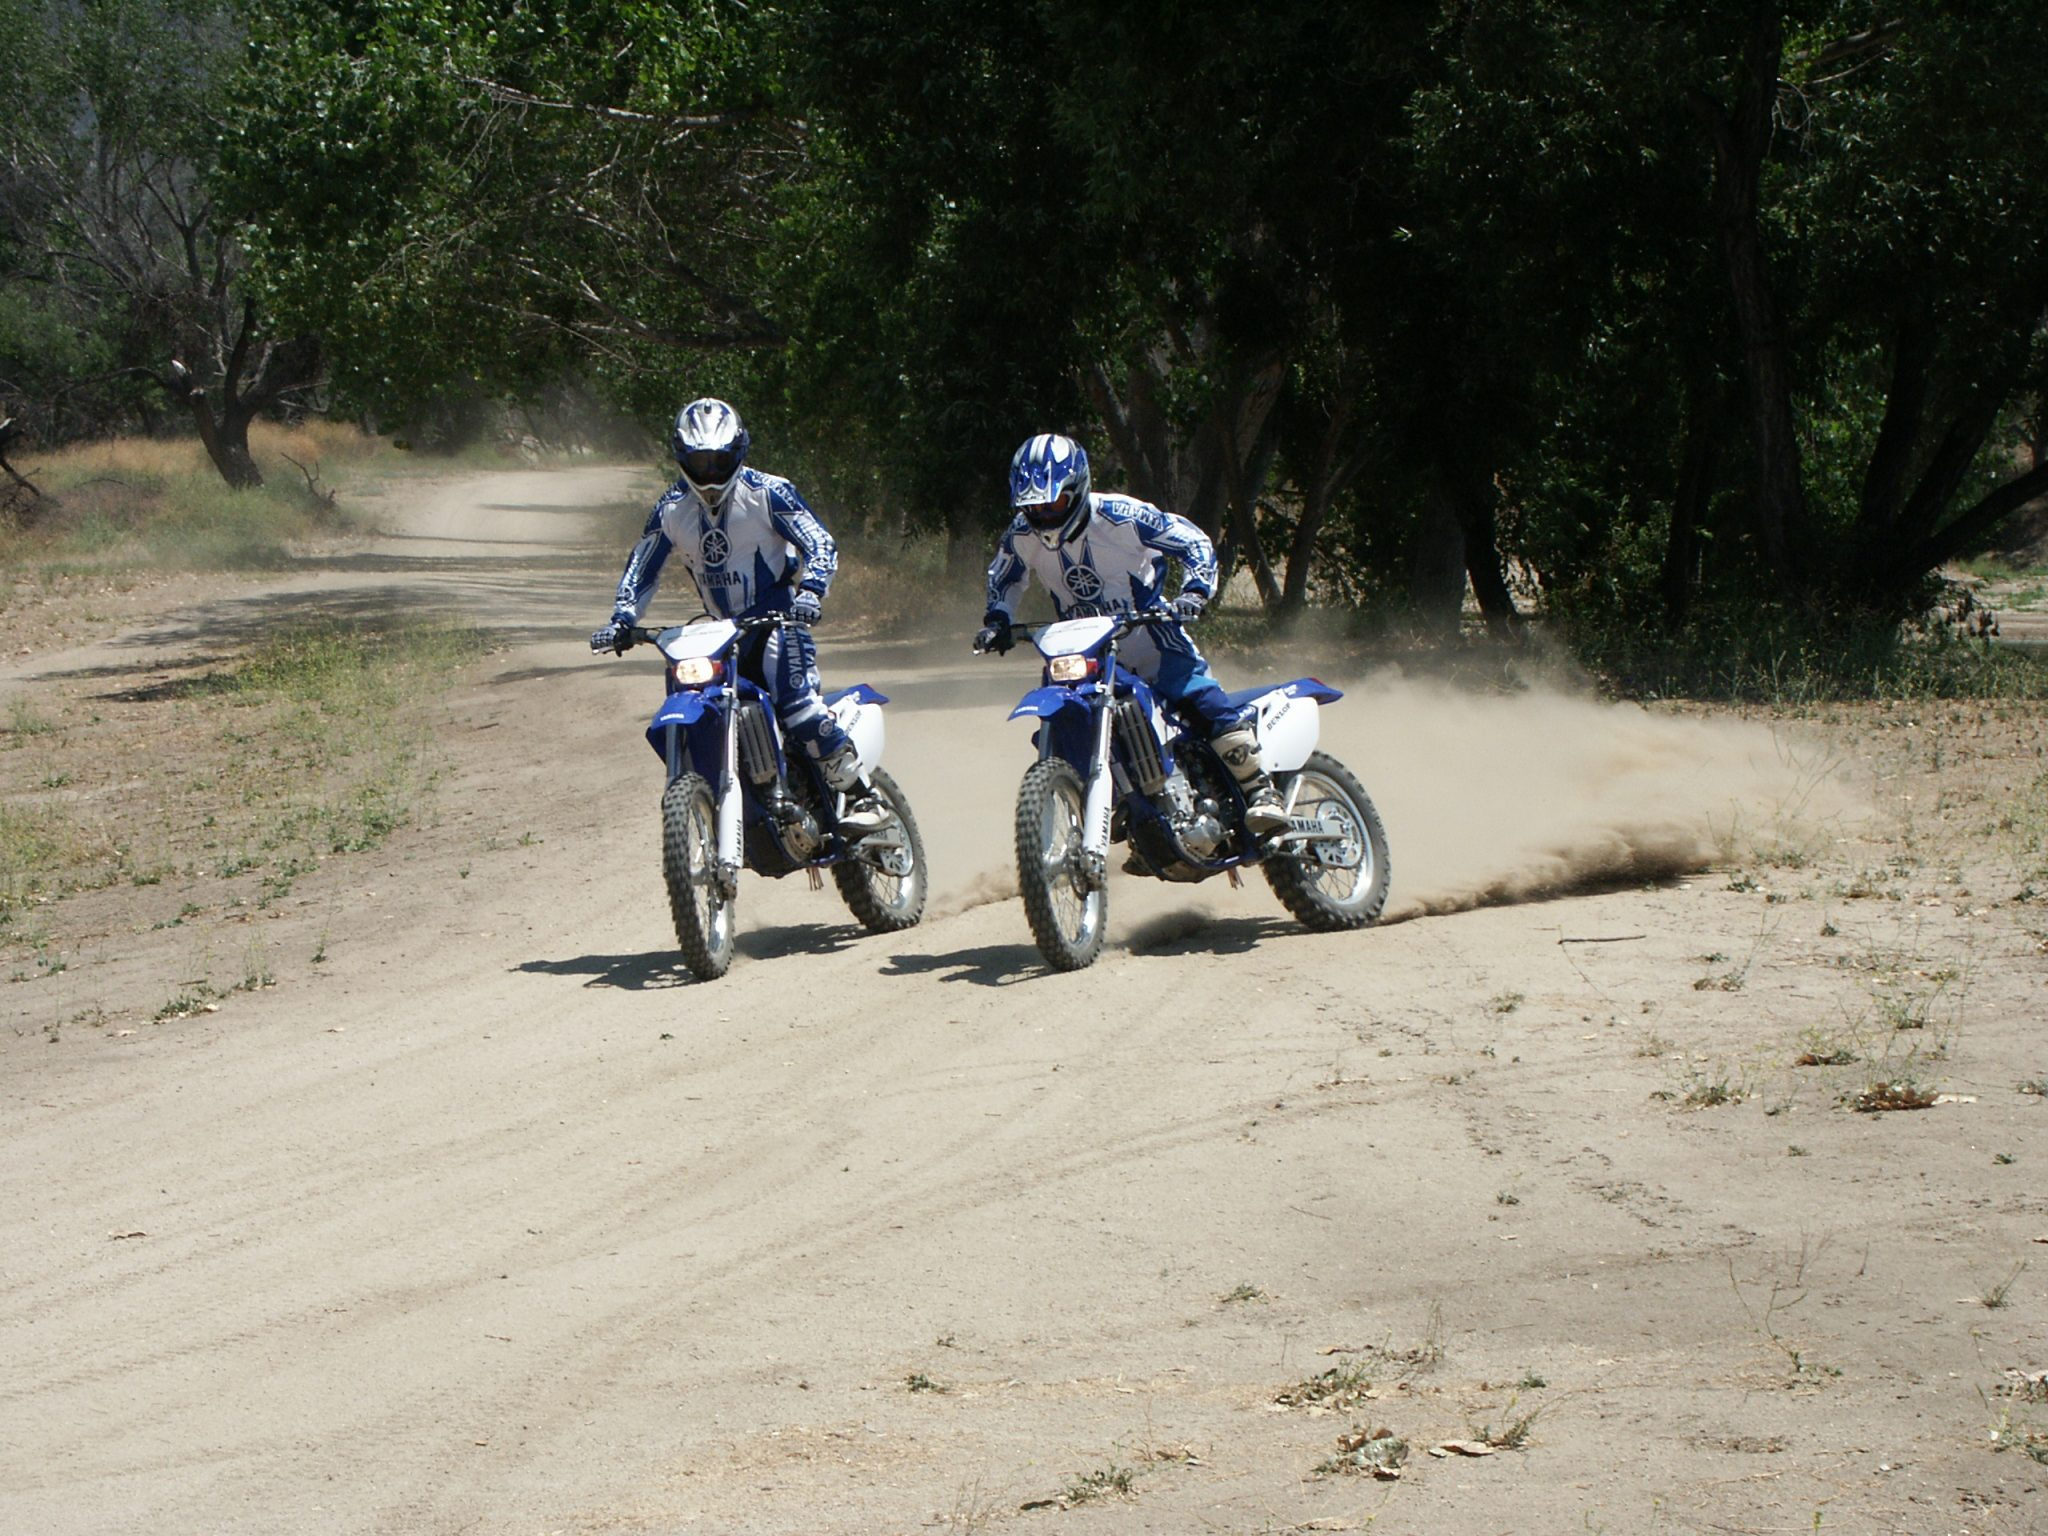 two men riding motorcycles